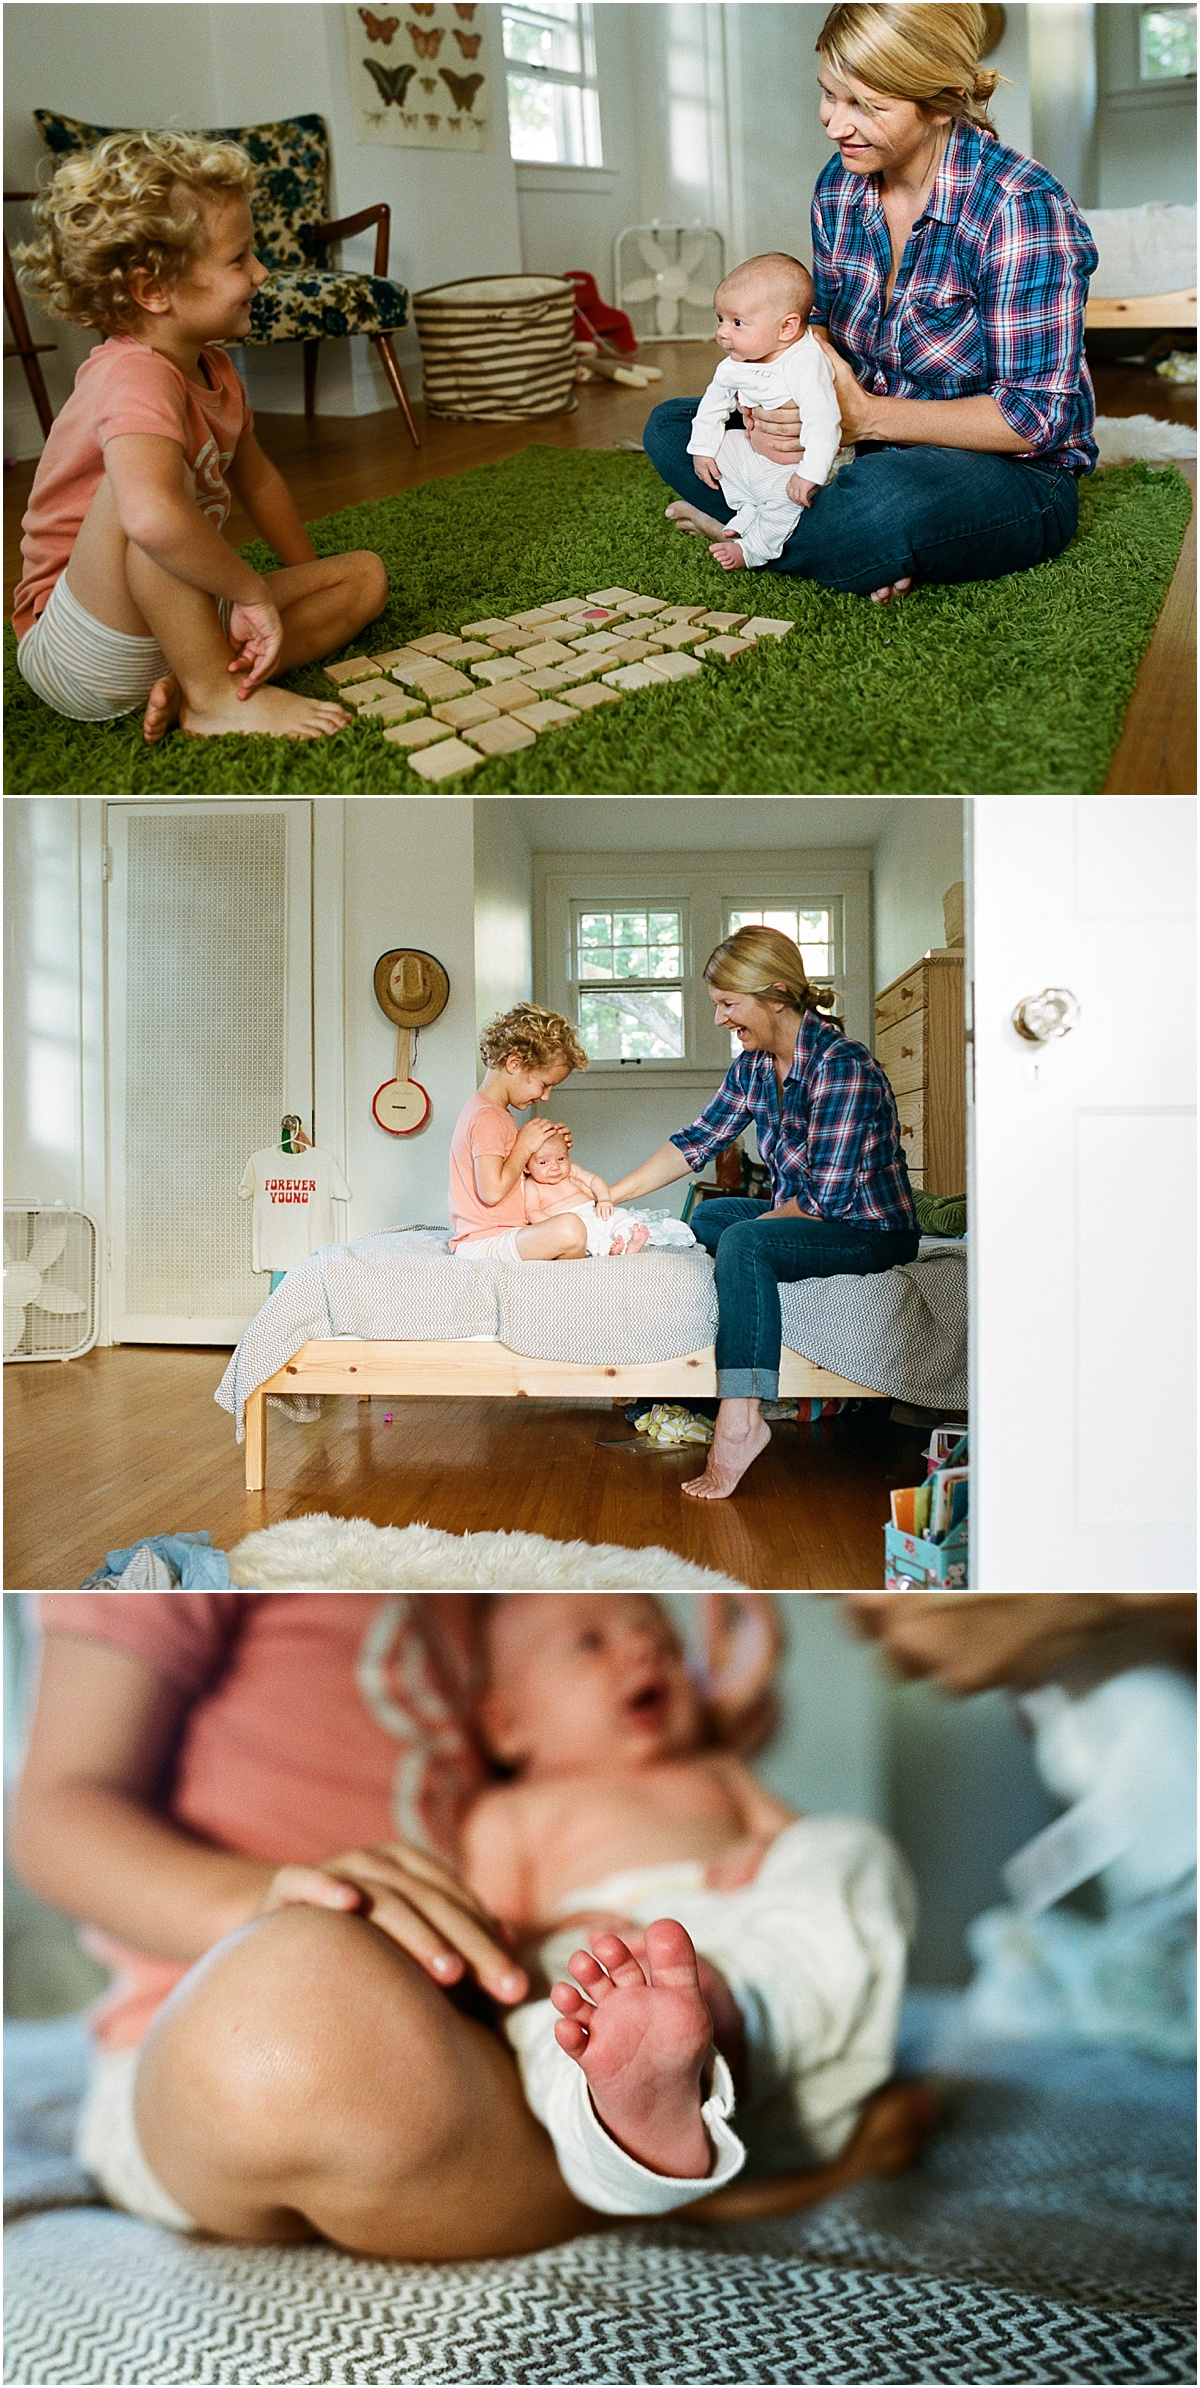 ©MariaManco Photography Family Session at Home on Film 2